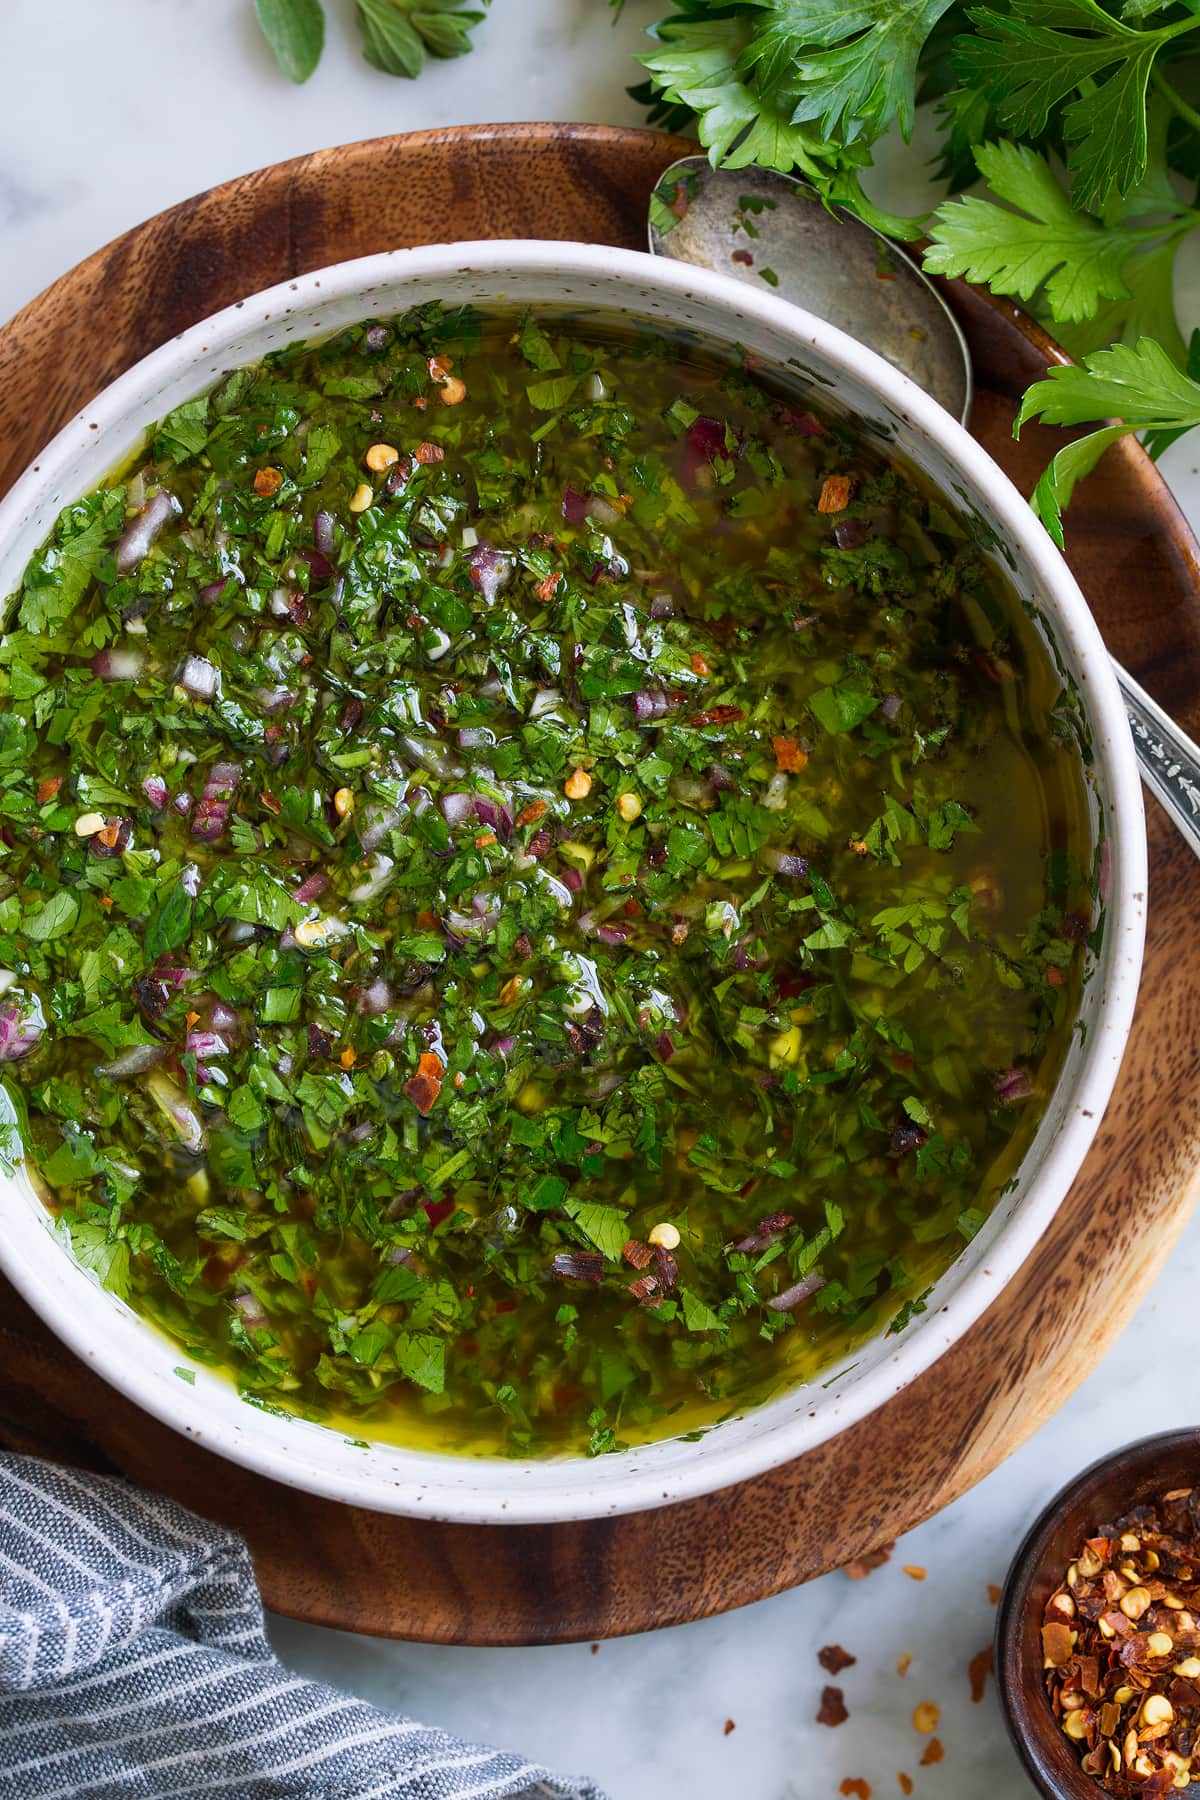 Chimichurri Sauce Recipe Most Flavorful Cooking Classy